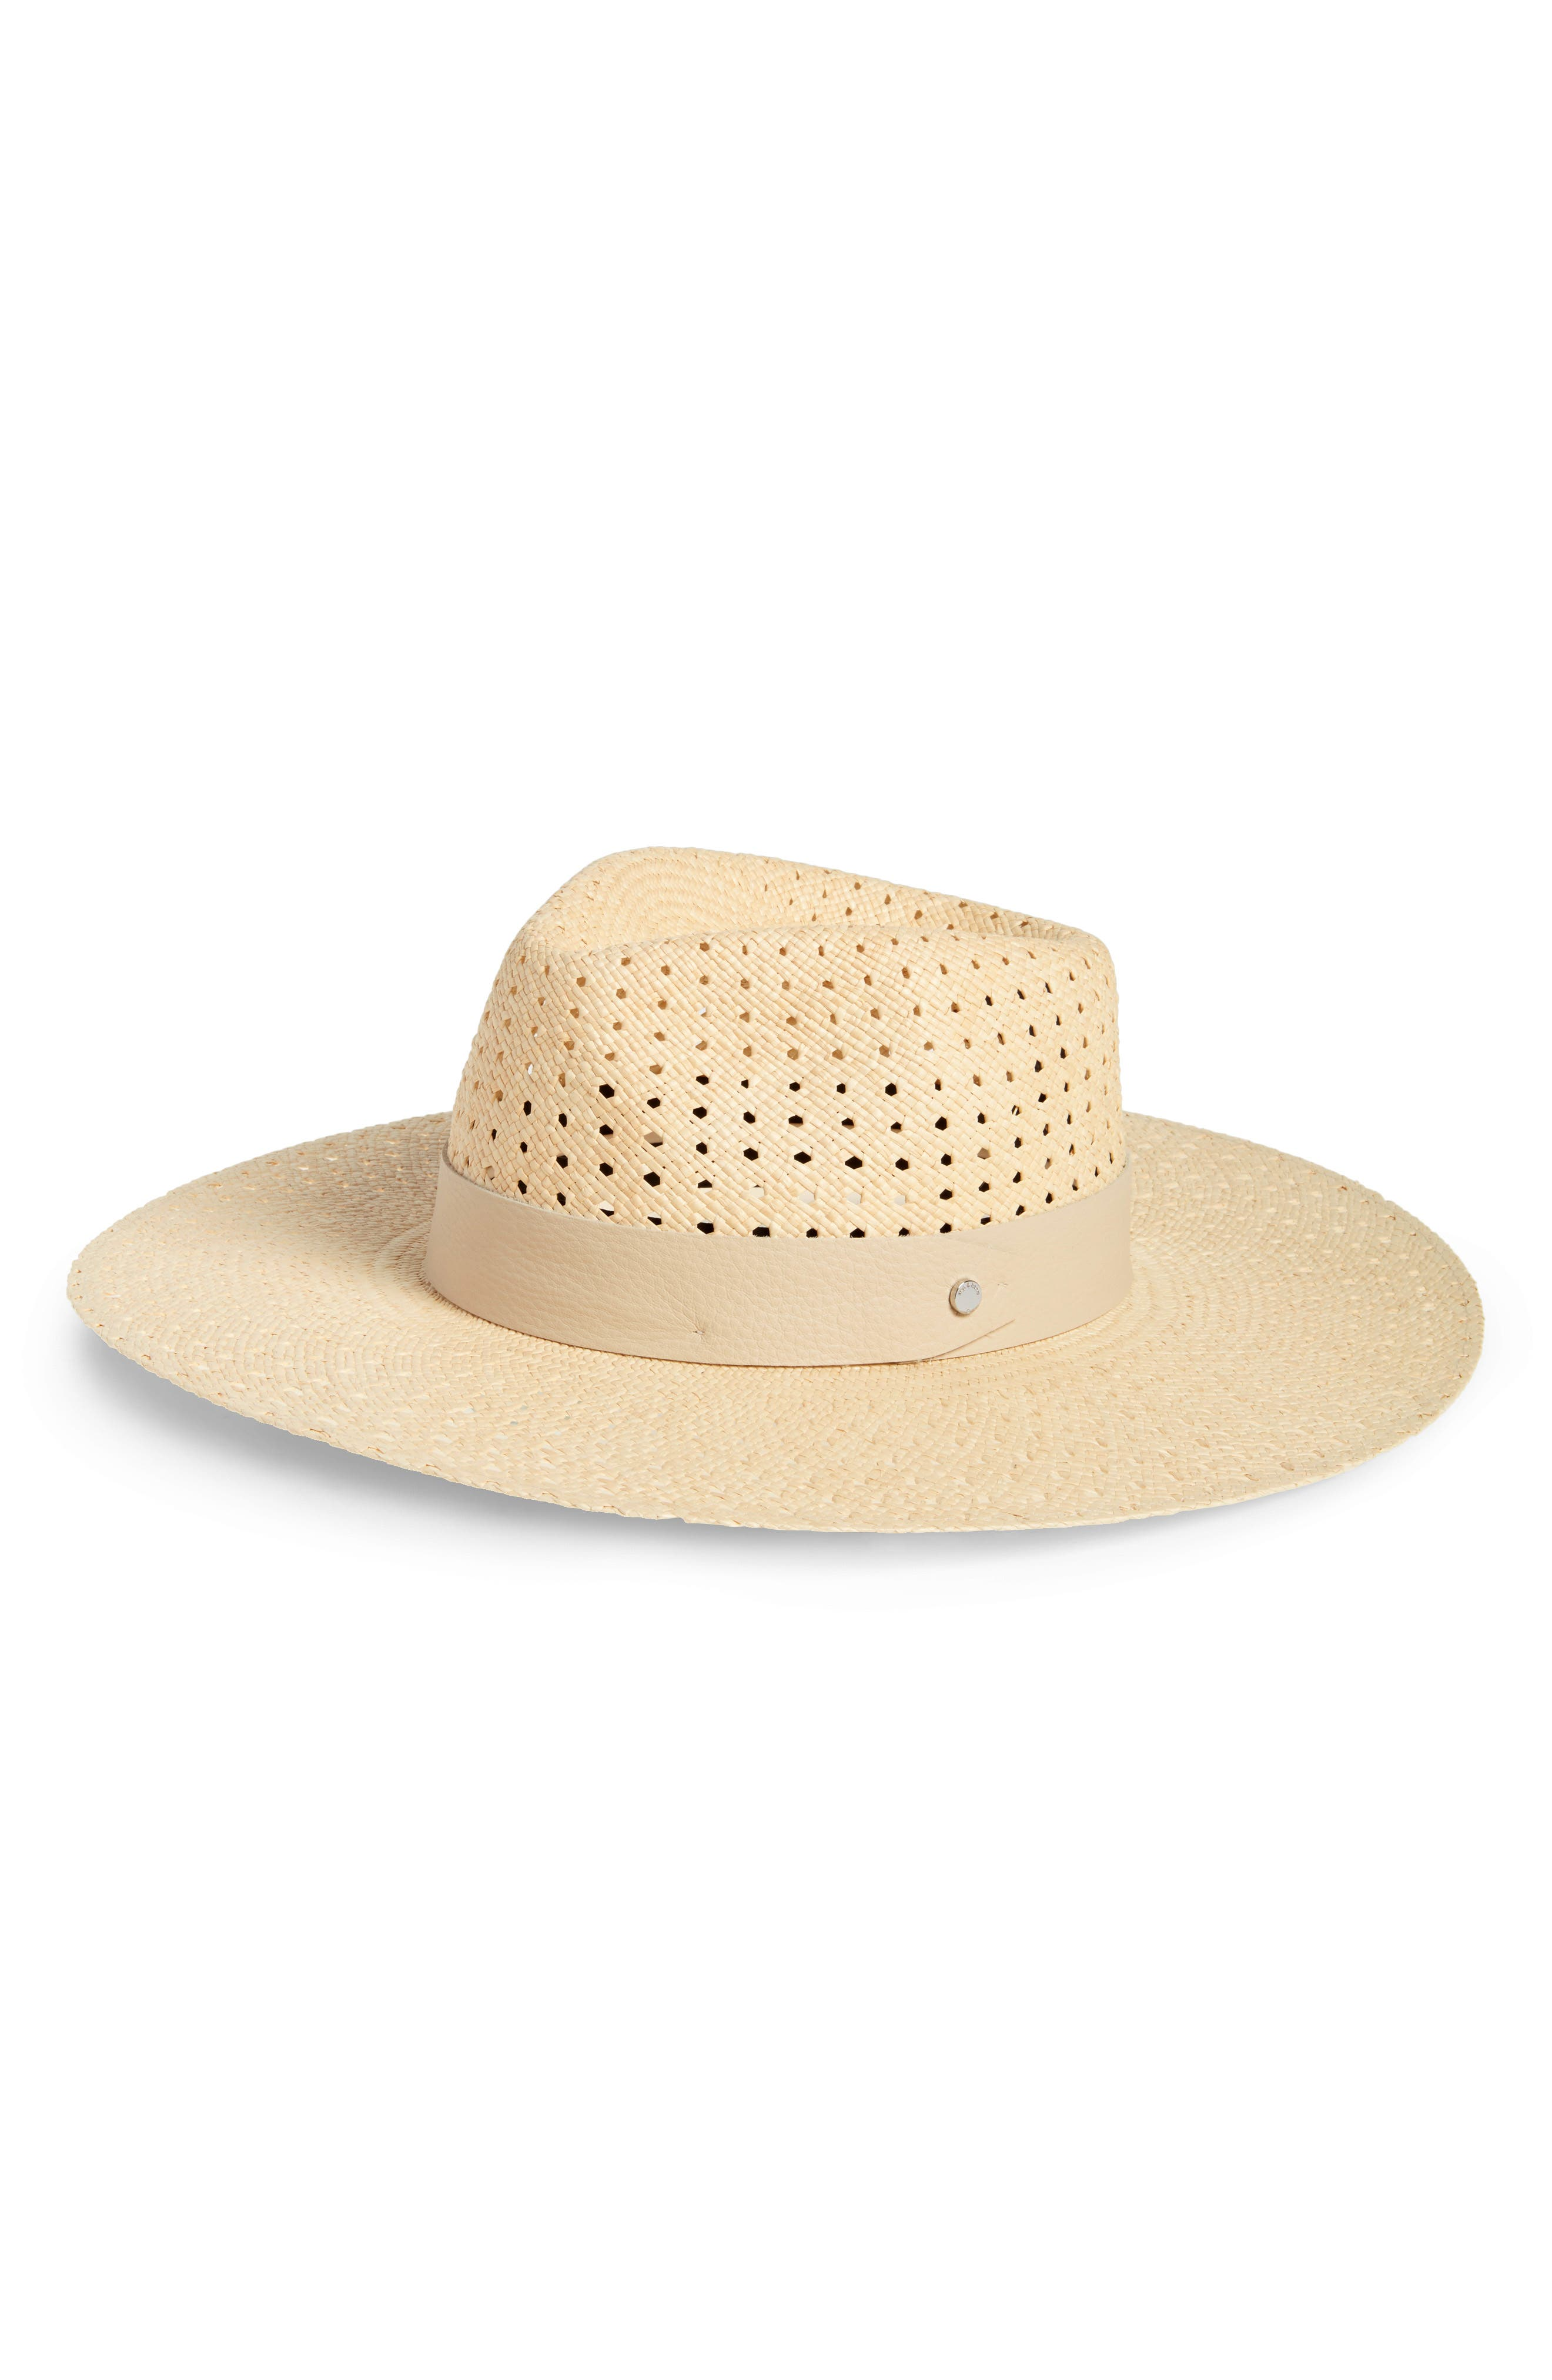 Lacey Wide Brim Panama Hat,                         Main,                         color,